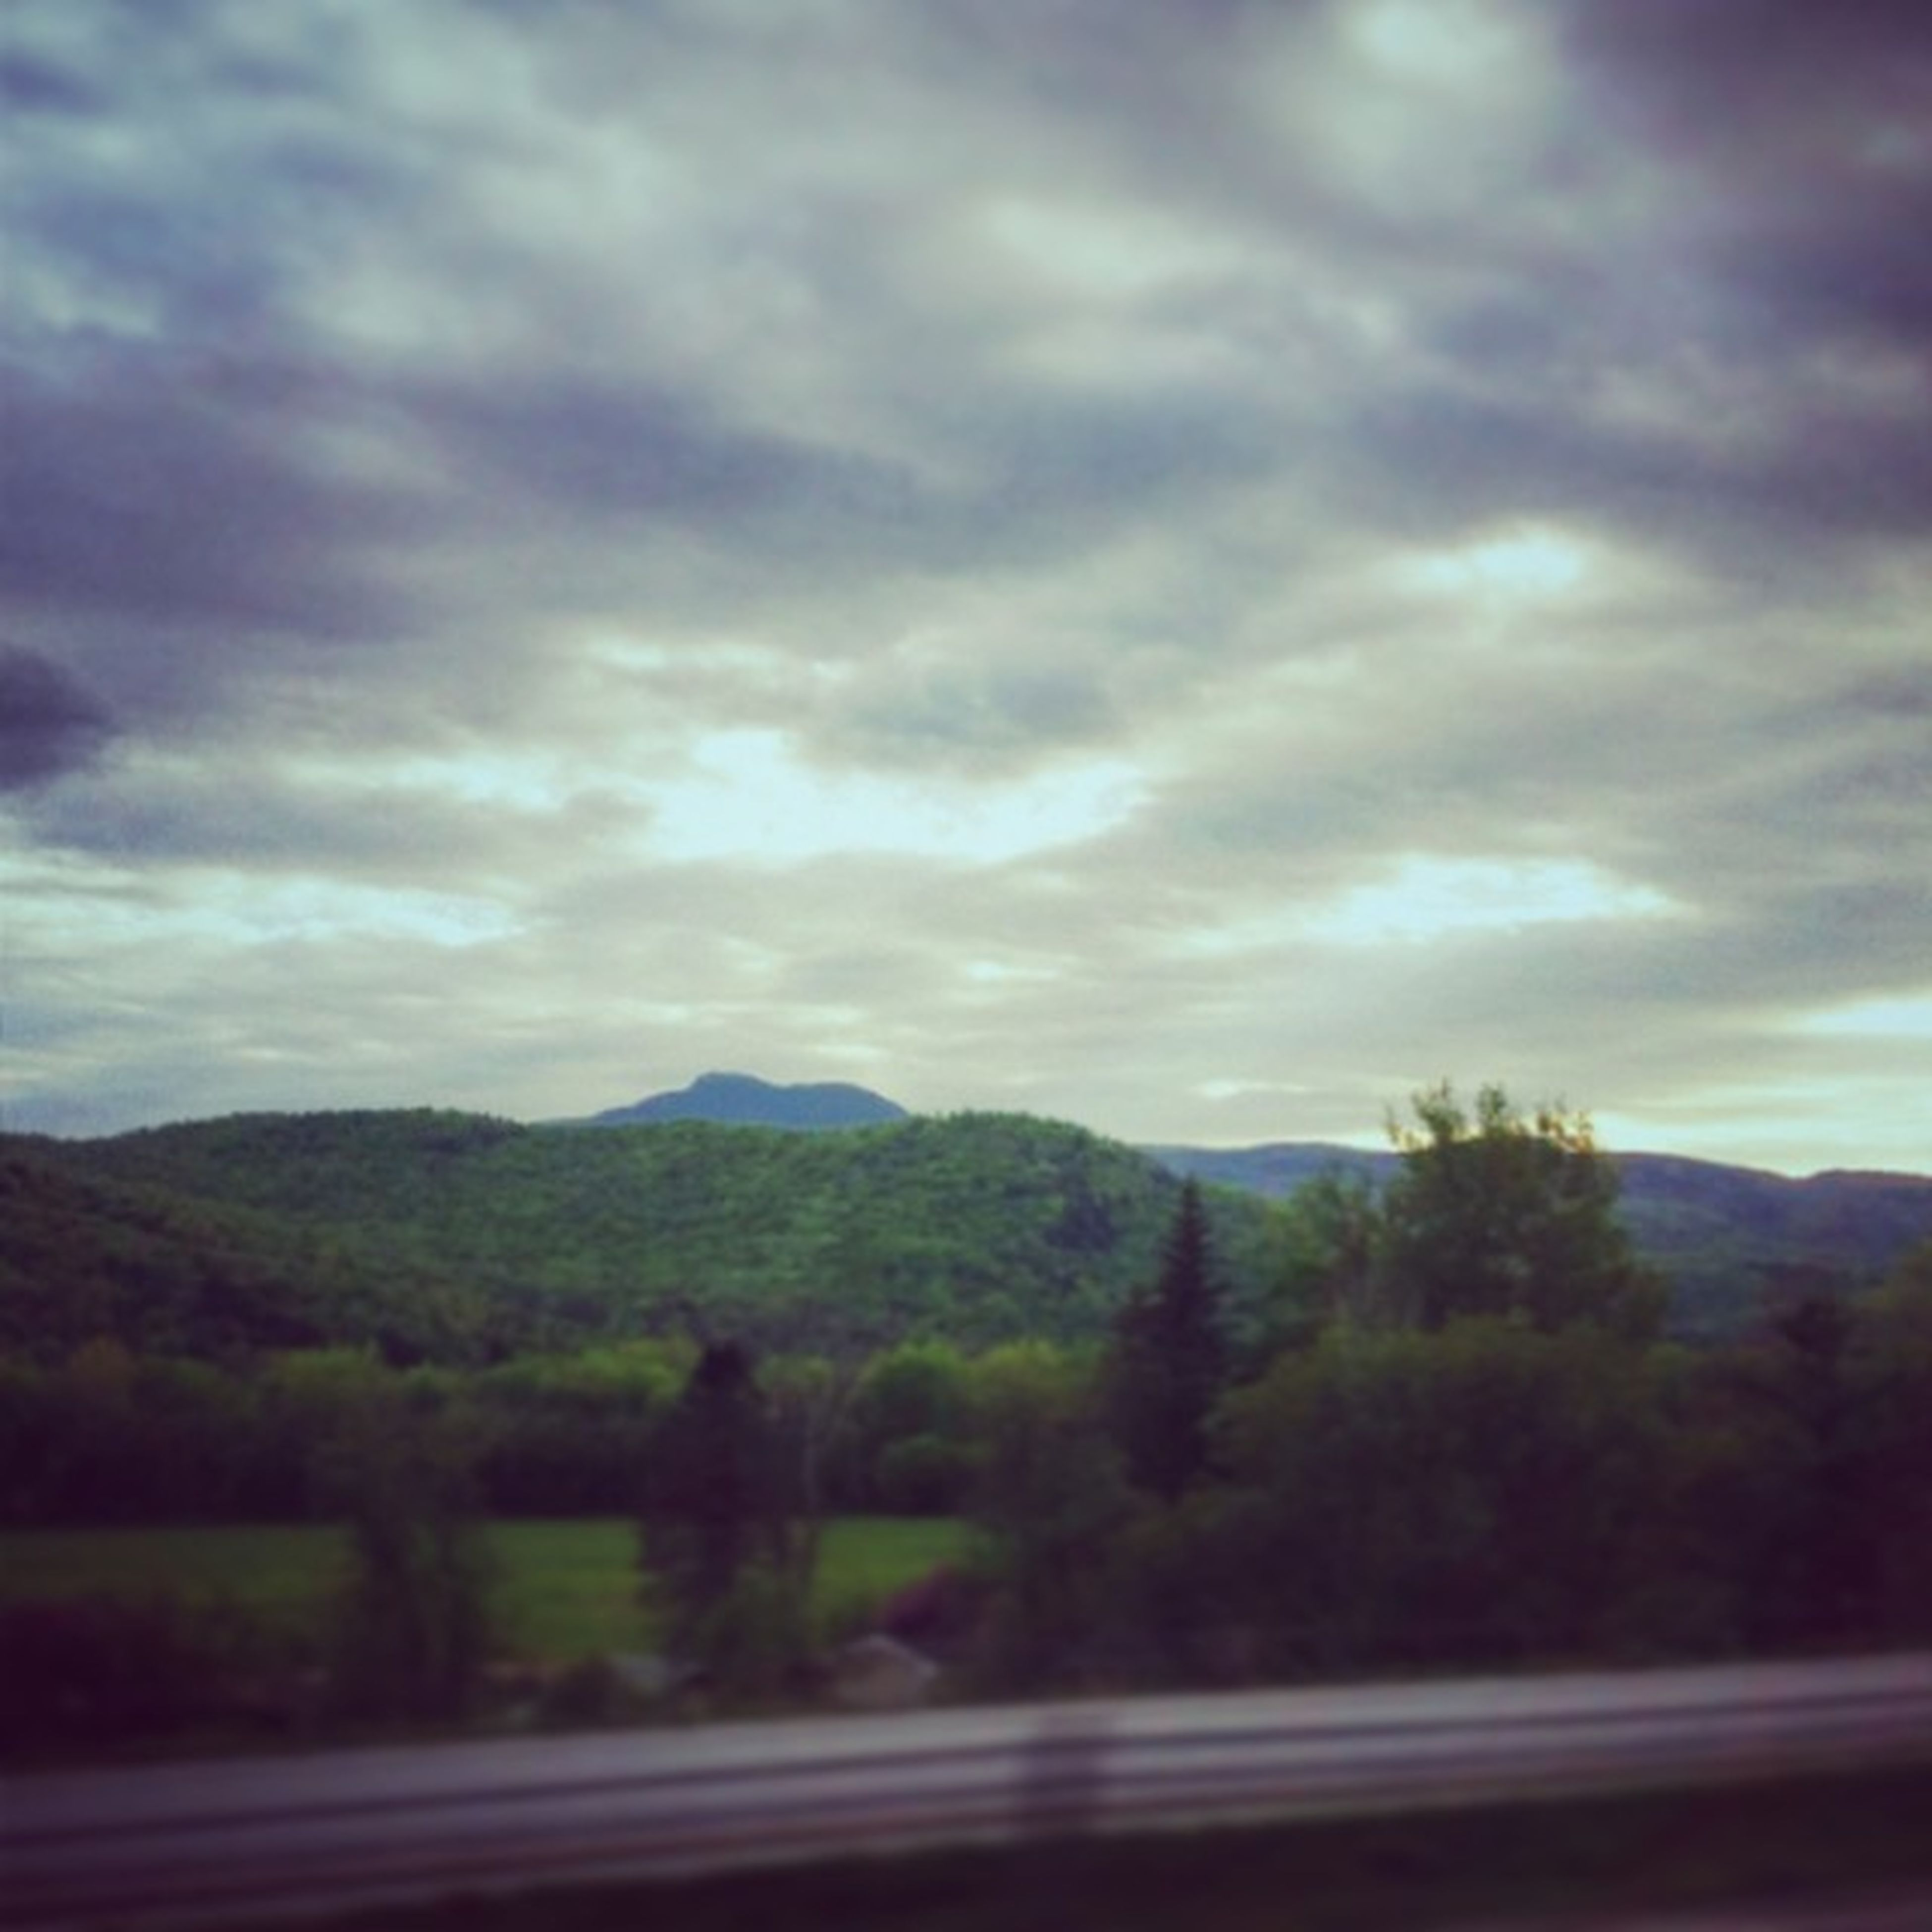 Even Vermont interstate views are awesome. Roadtrip Camelshump I89 Worktrip goodtimes vt vermont vermontshots vermontbyvermonters vscocam vscogood vsco instagood instagramusa ig_treasures vtshots igvermont ignewengland cloudporn cloudscape beautiful mountains greenmountainstate latergram